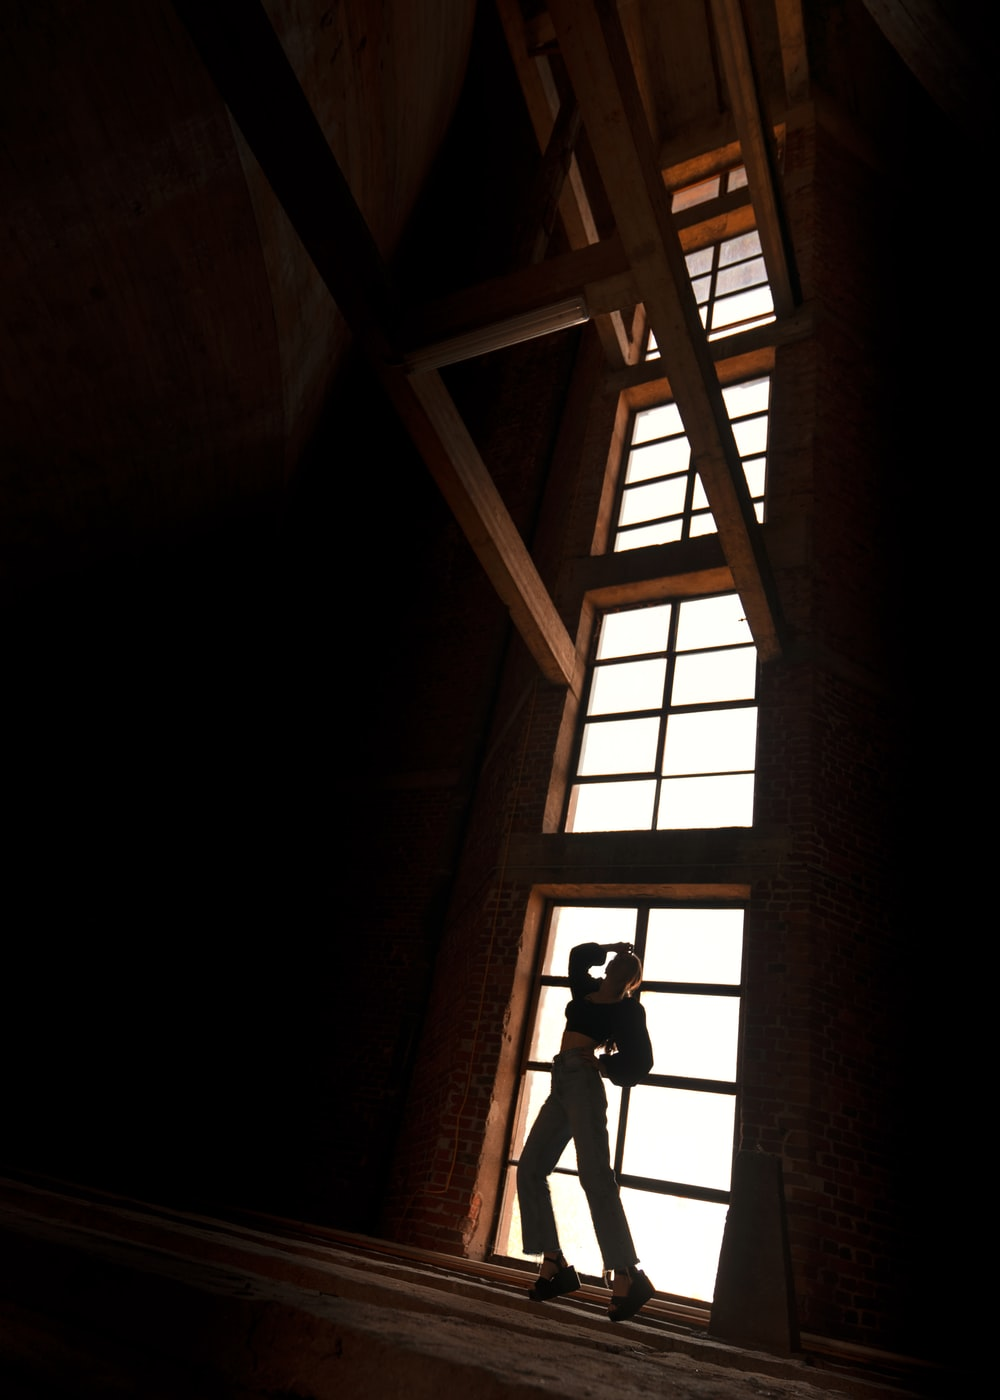 silhouette of person standing on window